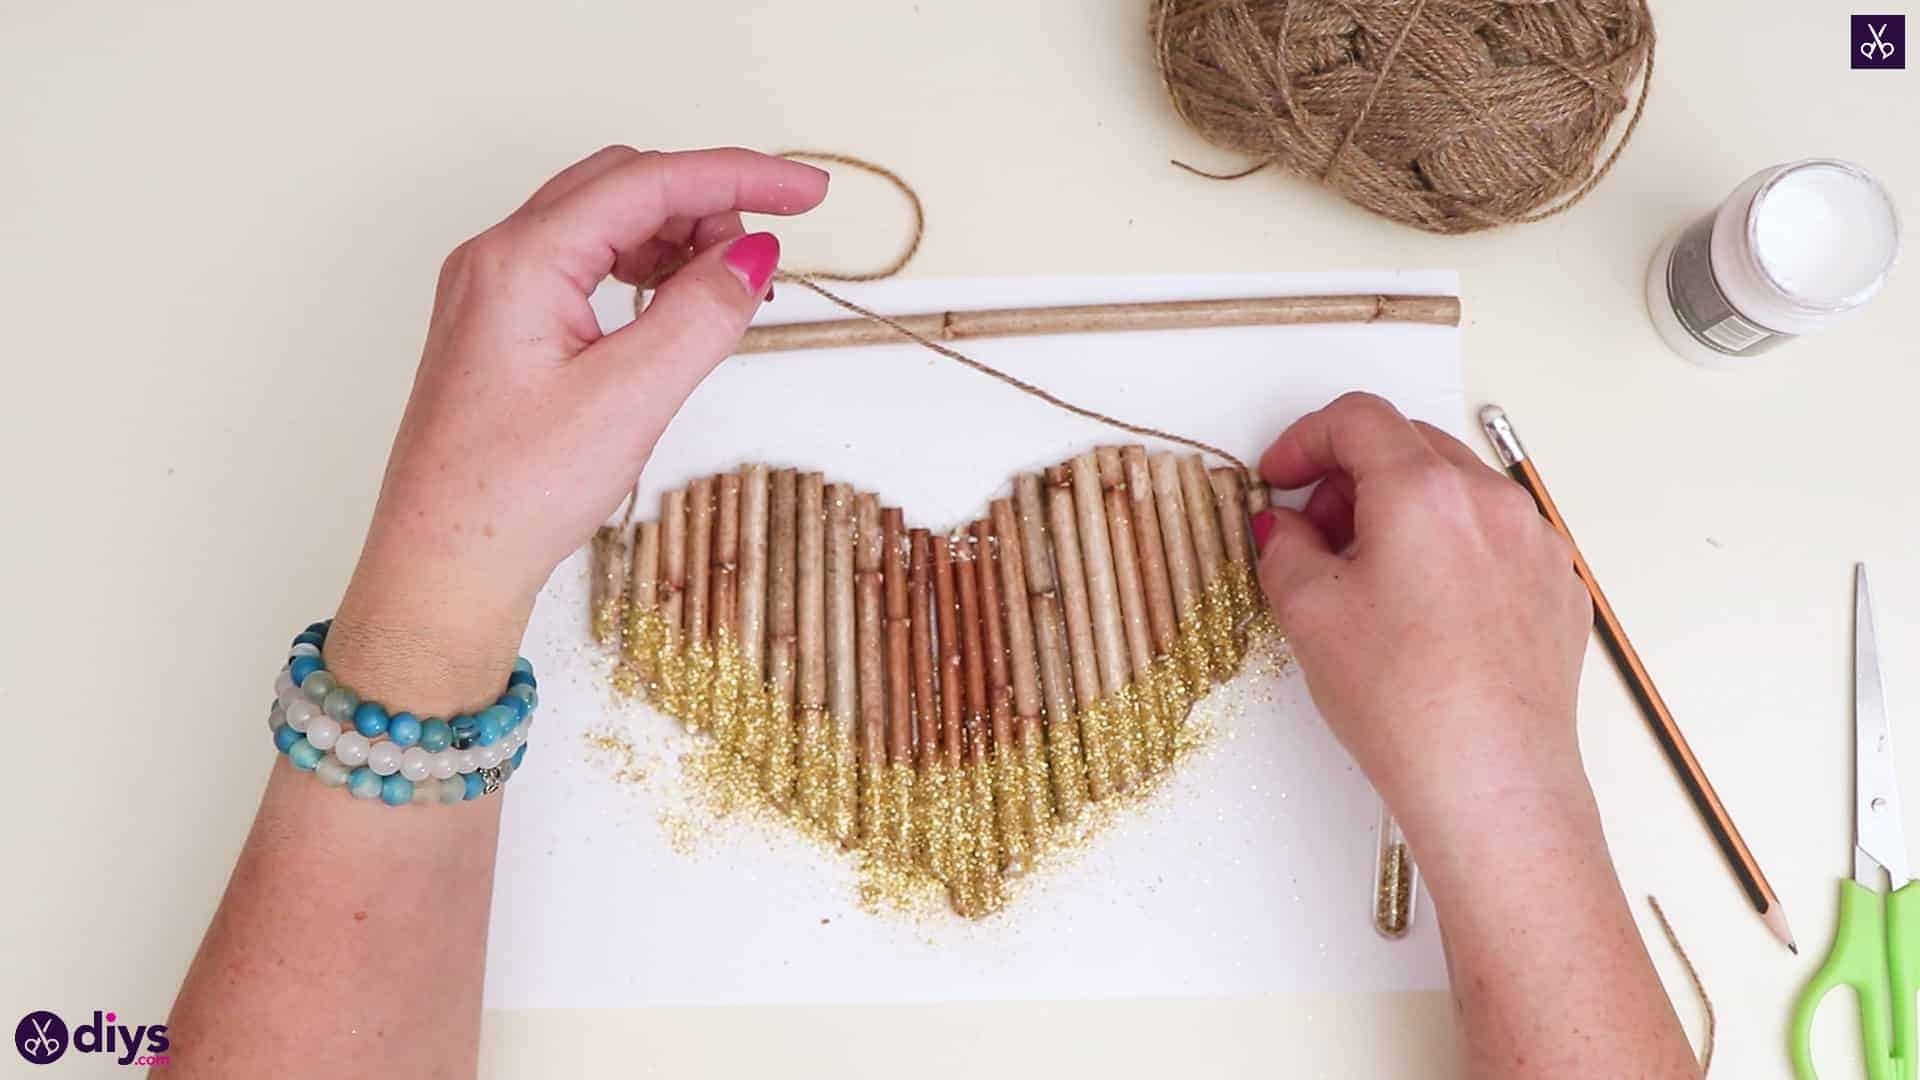 Diy hanging twig heart step 5b